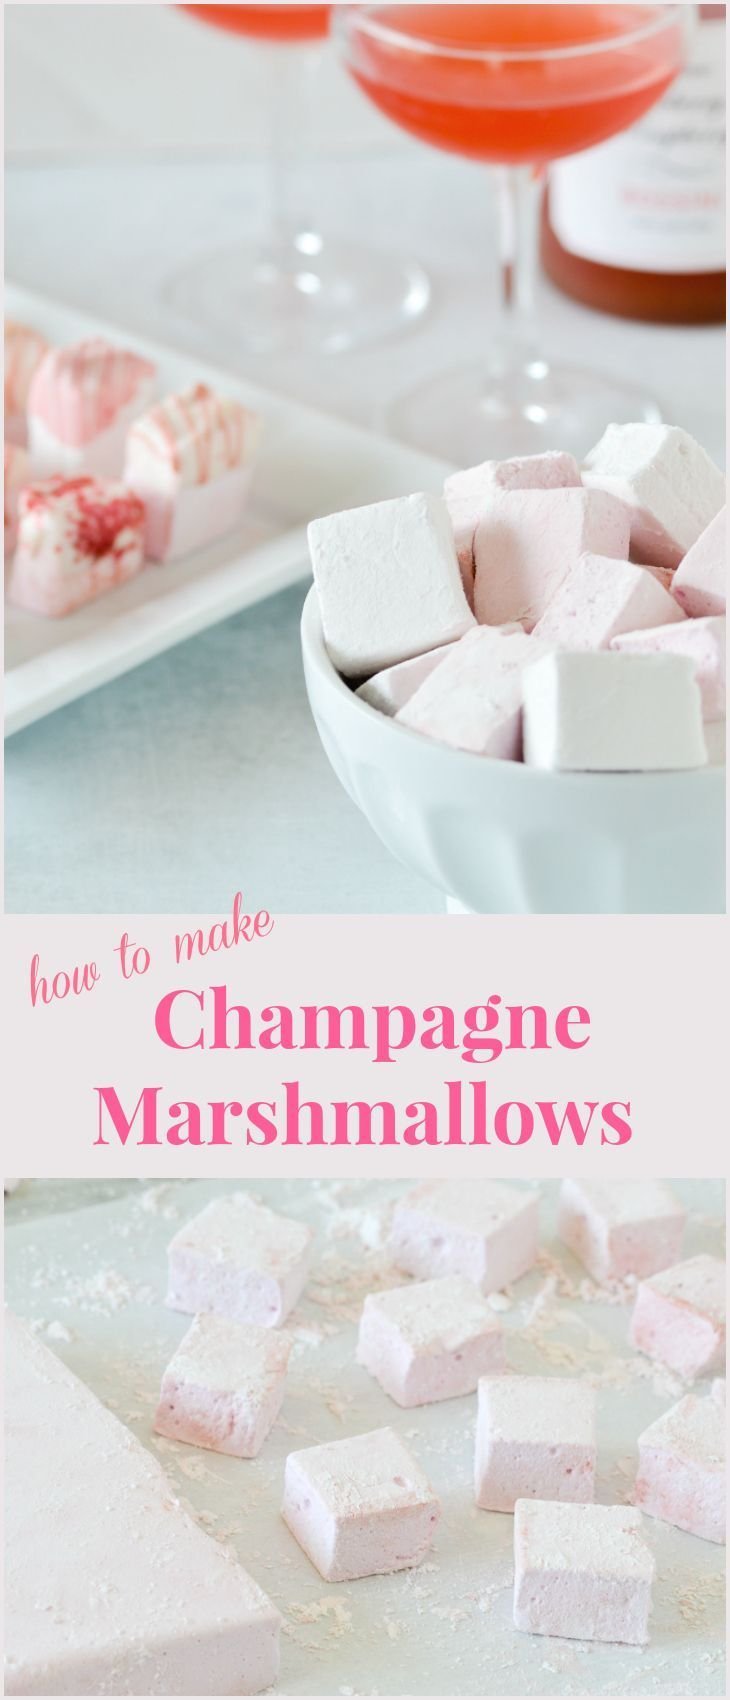 Champagne Marshmallows - Partylicious #flavoredmarshmallows